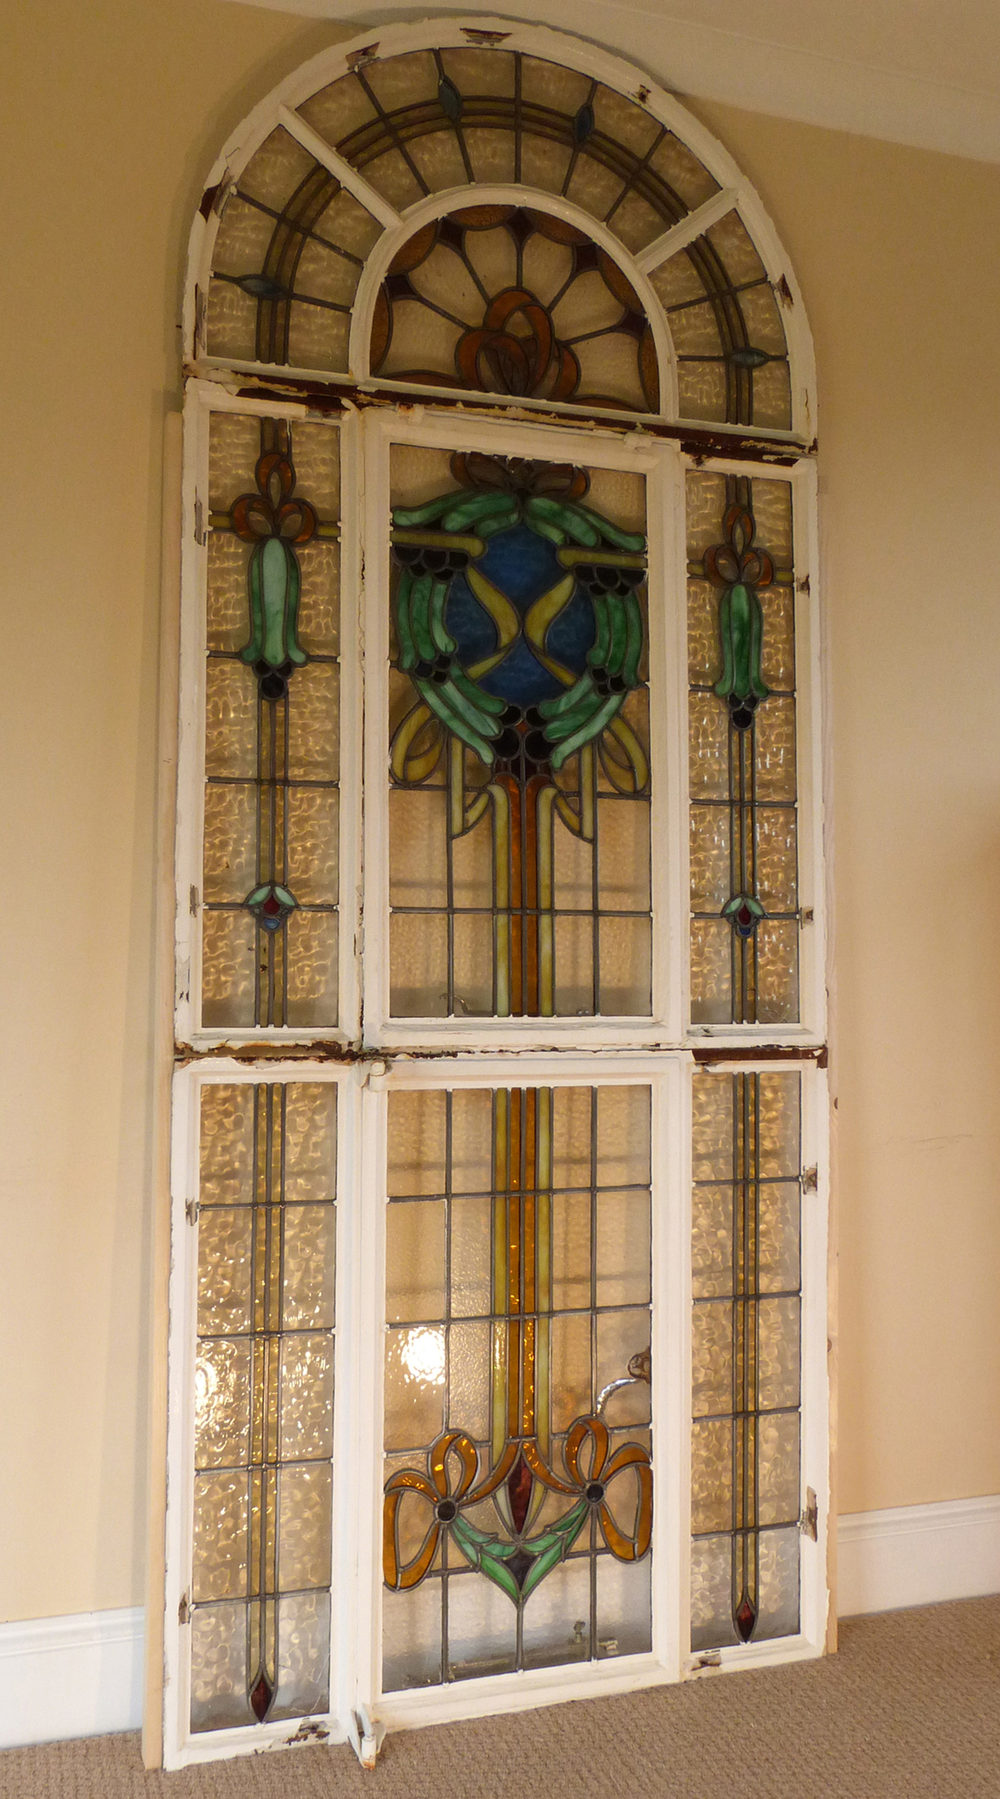 Old Leaded Glass Windows : Antiques atlas a large stained glass leaded window